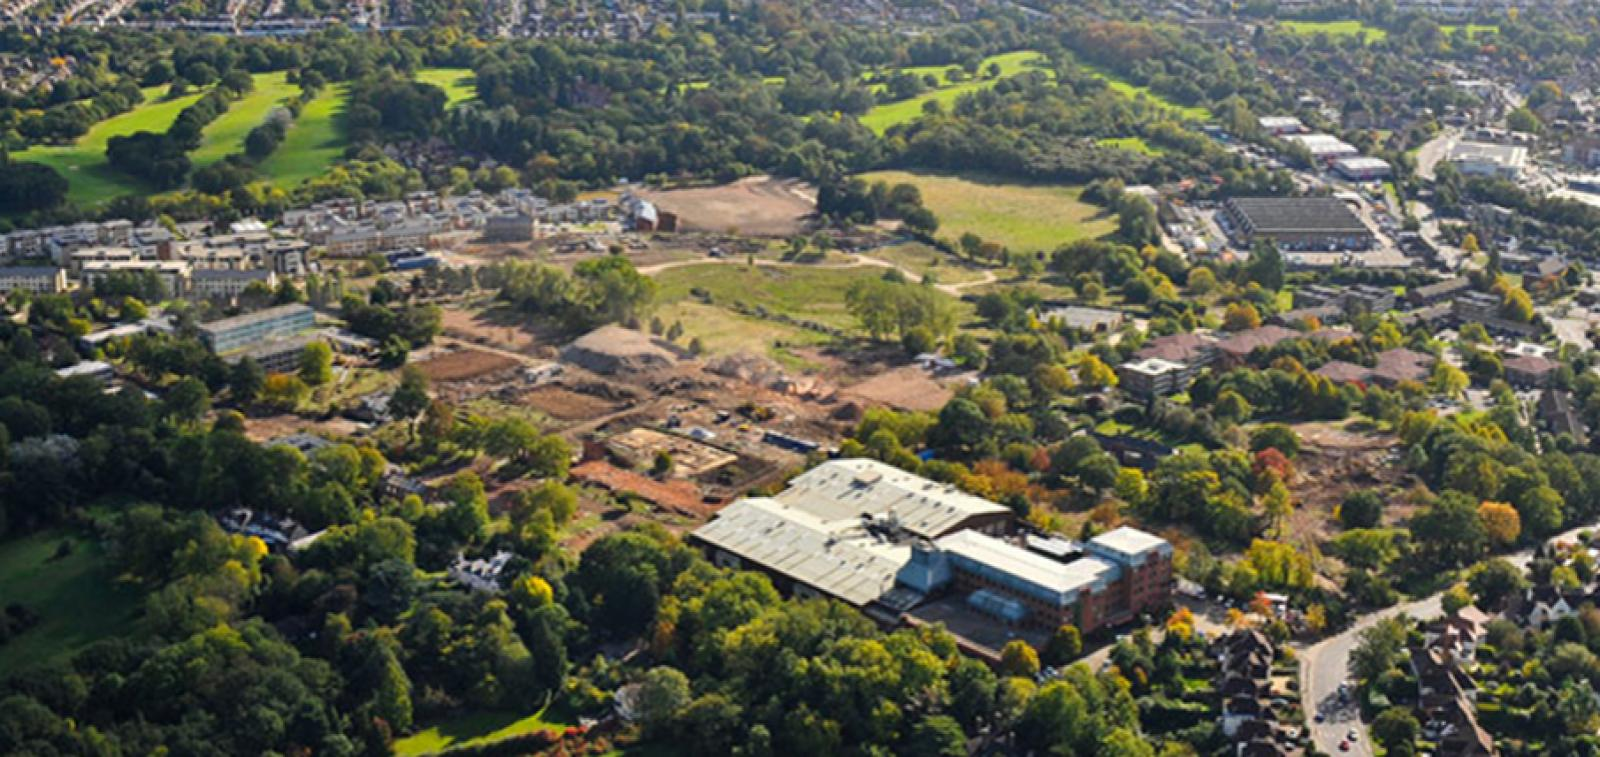 Aerial photo of the Millbrook Park development in North London.